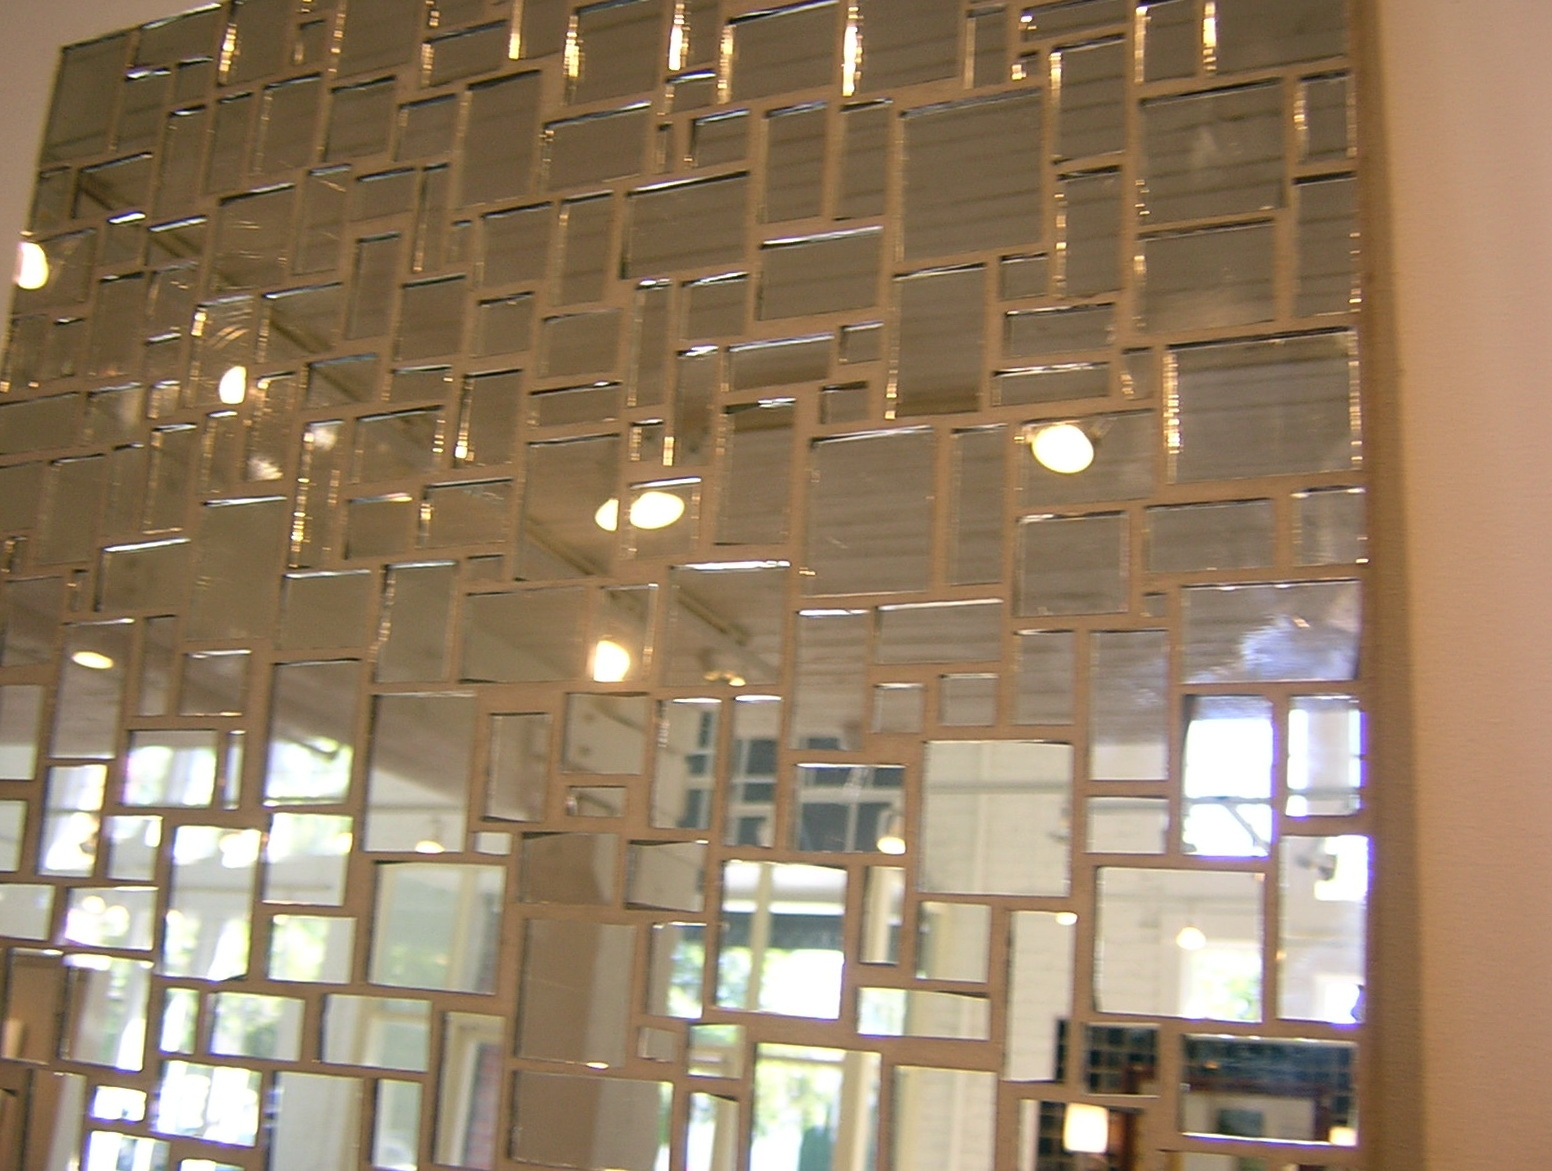 Permalink to Mirror Wall Tiles 12×12